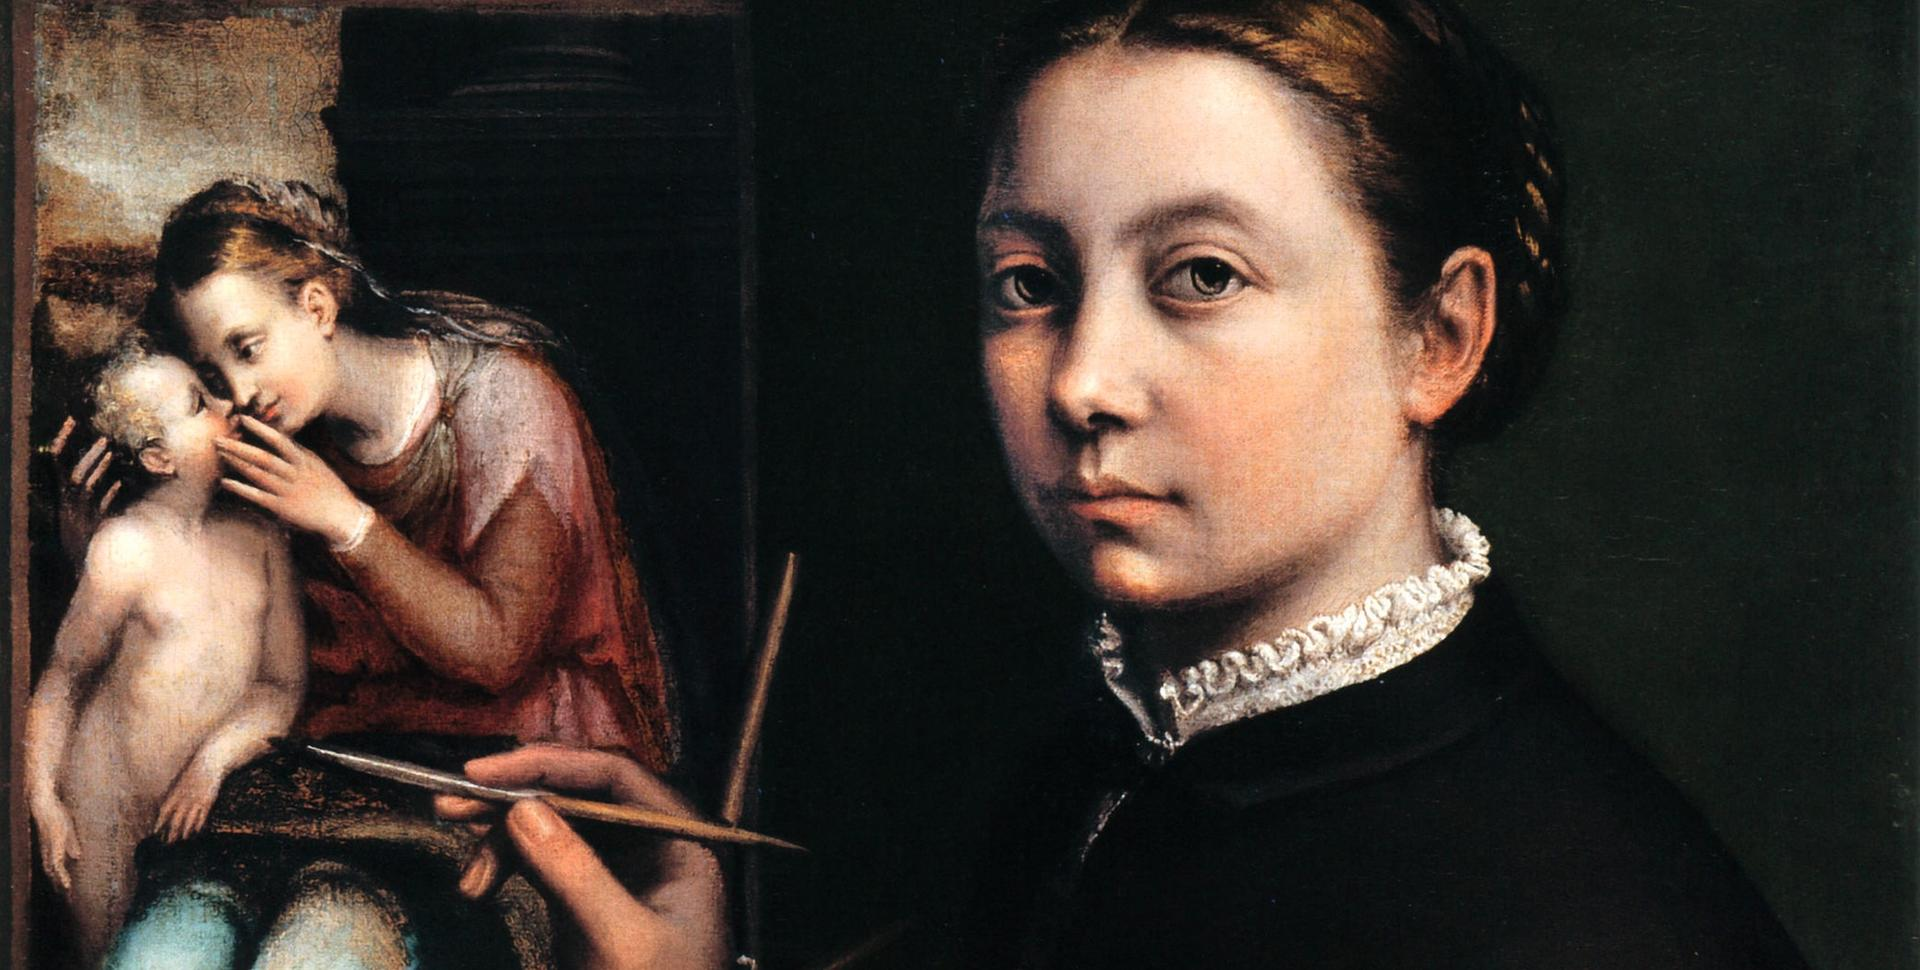 Sofonisba Anguissola's Self-portrait at the Easel Painting a Devotional Panel (1556). Courtesy of The Picture Art Collection/Alamy Stock Photo Sofonisba Anguissola's Self-portrait at the Easel Painting a Devotional Panel (1556). Courtesy of The Picture Art Collection/Alamy Stock Photo